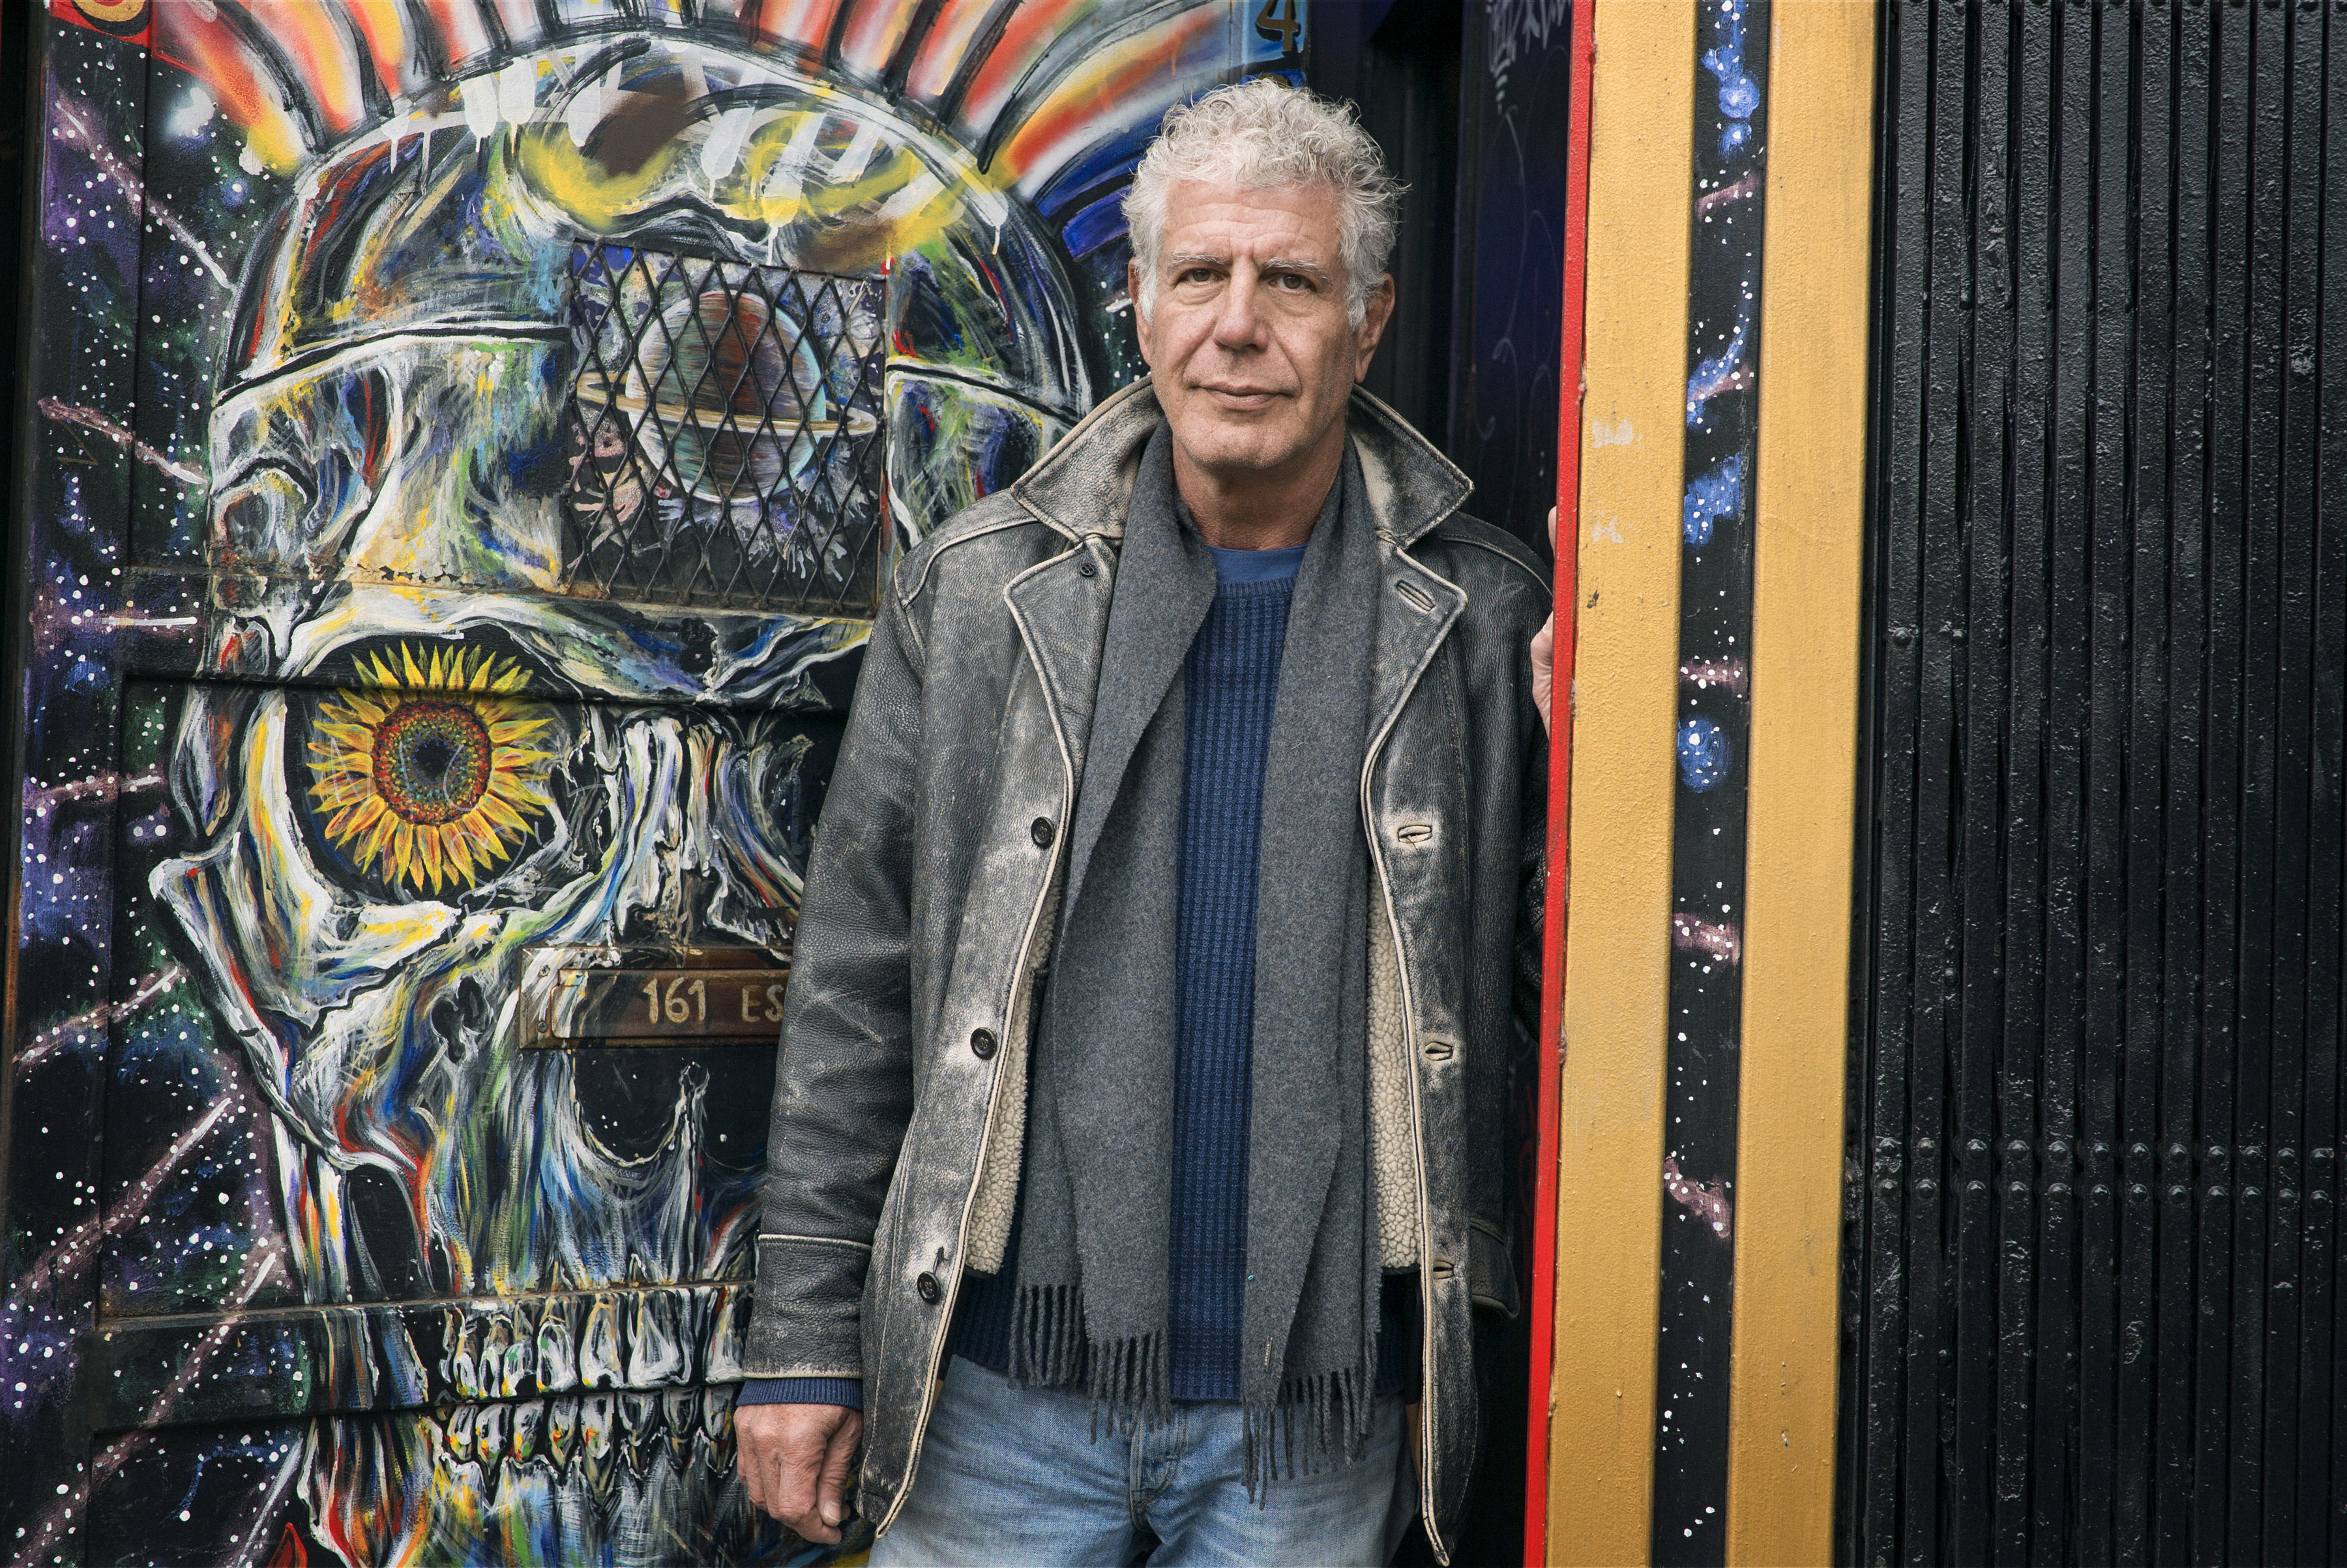 Anthony Bourdain poses with street art outside Patterson's Outlaw Art Gallery in the Lower East Side episode of Parts Unknown.